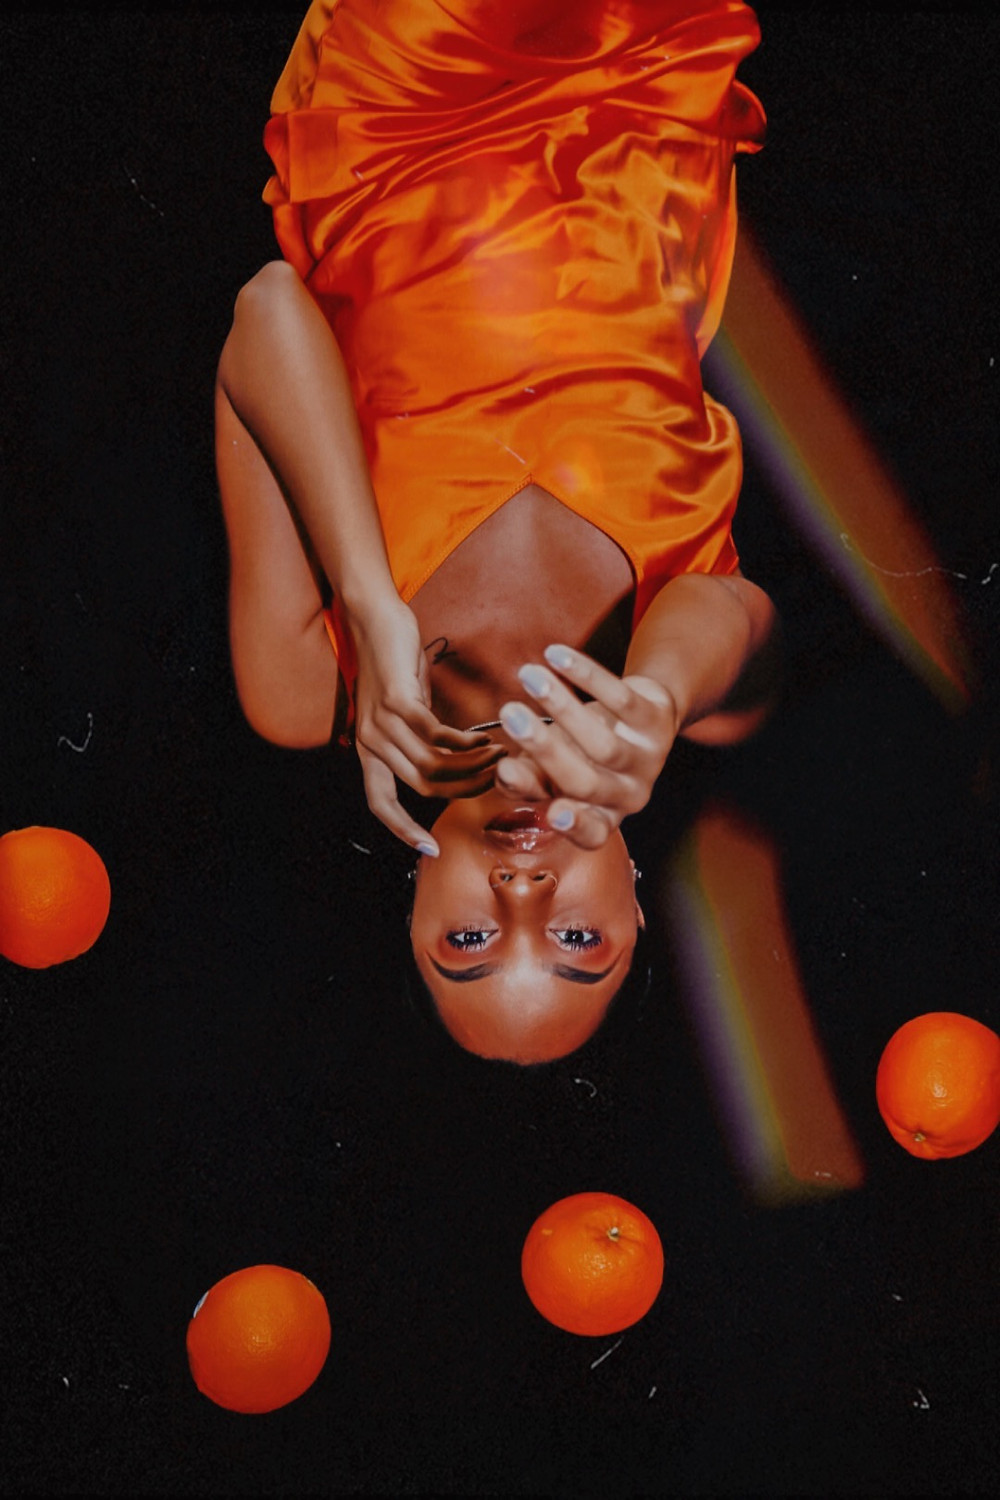 This image was captured to portray the balance and awakening of sacral energy and chakra alignment. This image was shot in collaboration of Anii Cooper with Sage Me Down and Dashlyn Johnson with The Ladie Plug.